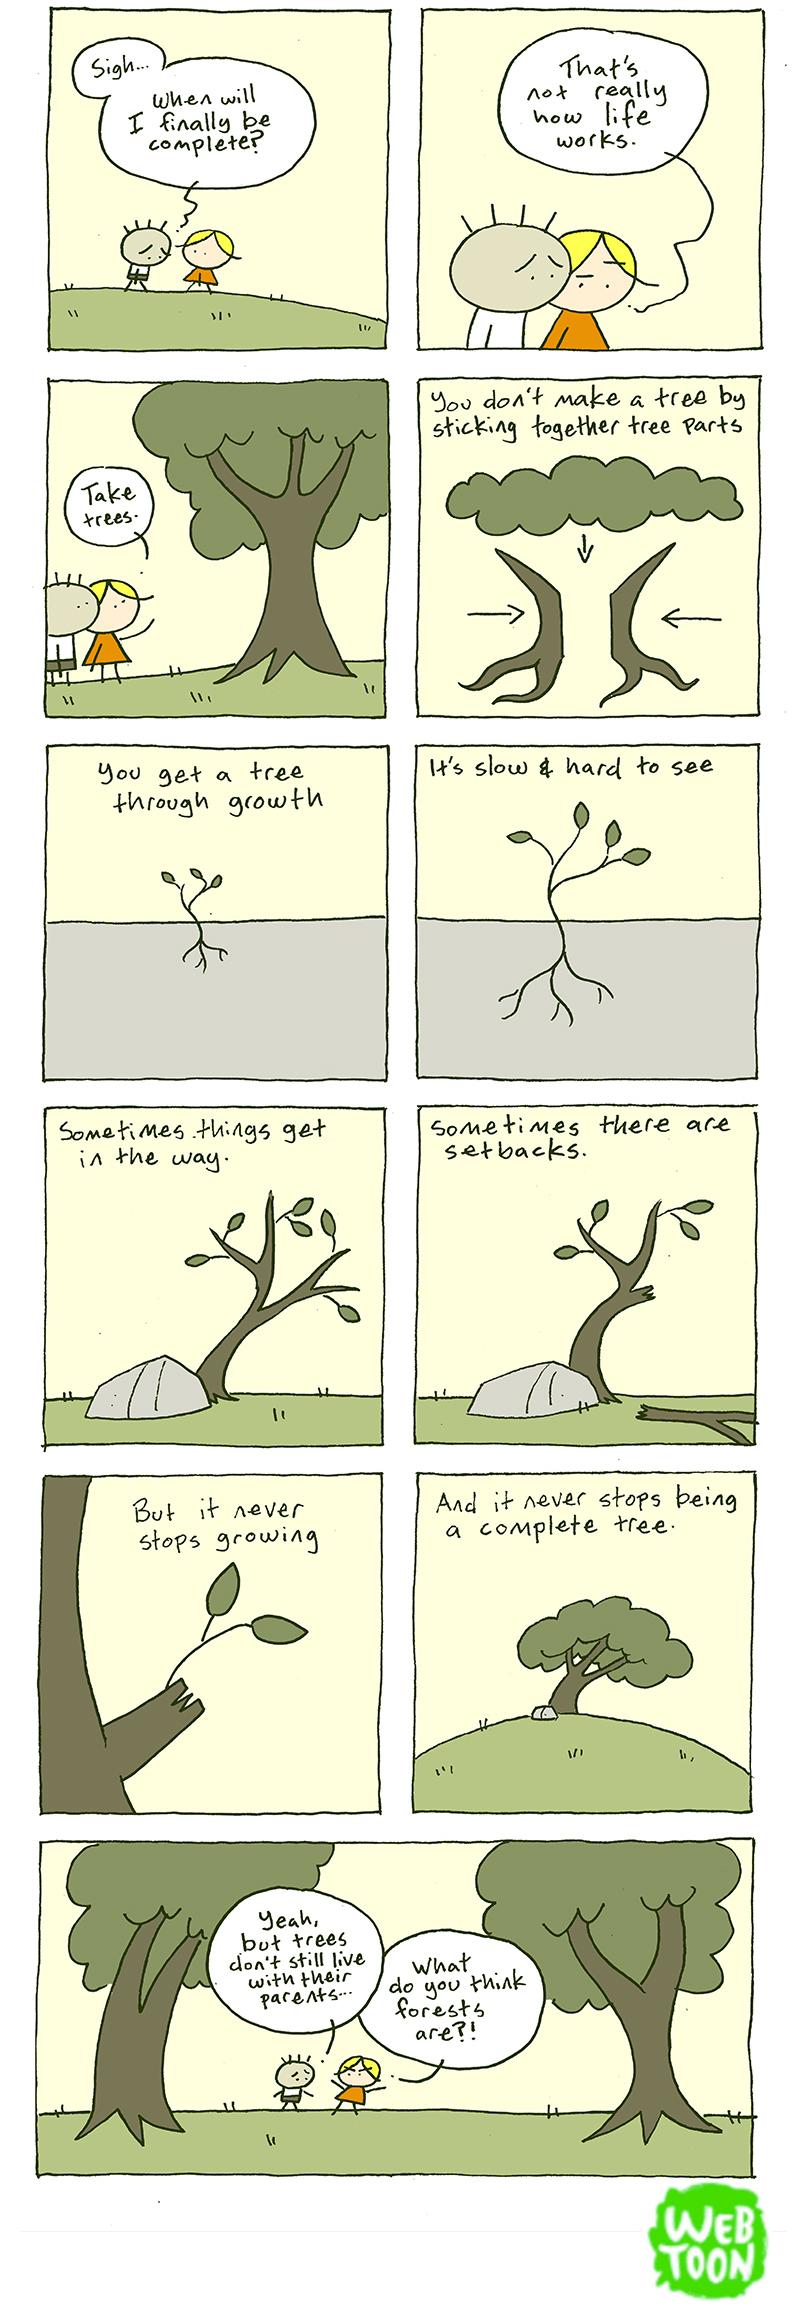 [Image] Growth